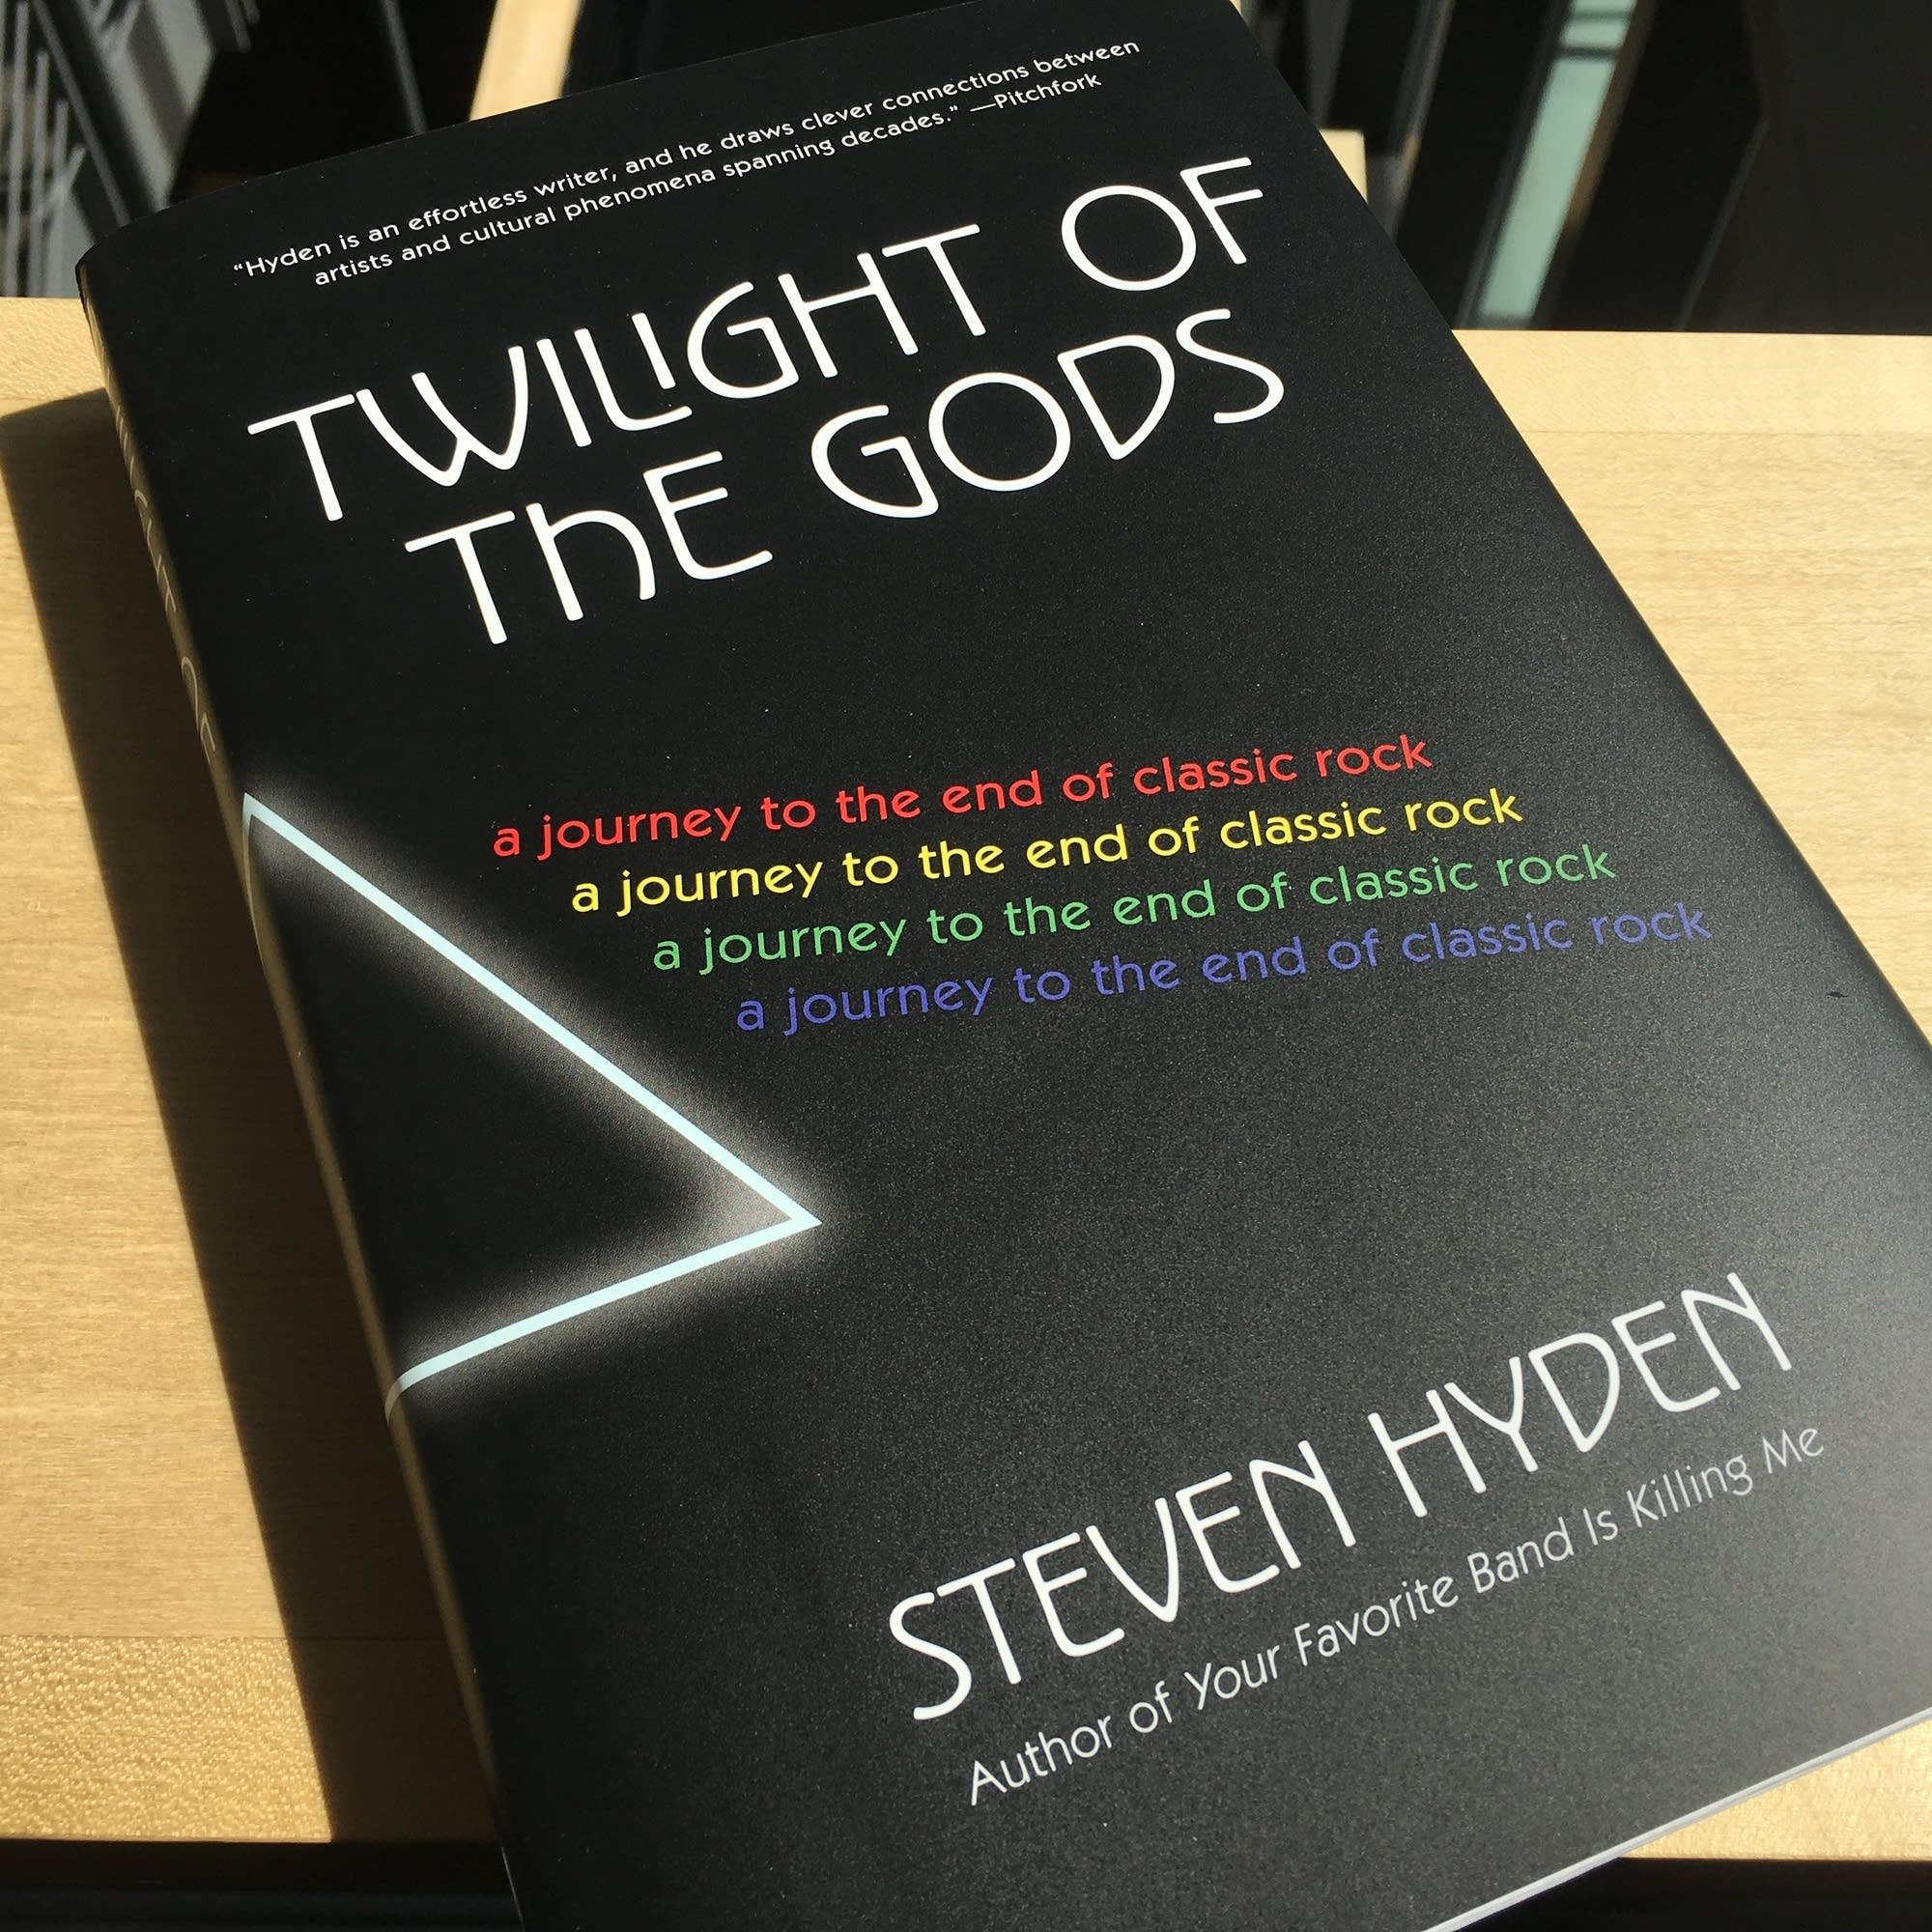 Steven Hyden's 'Twilight of the Gods.'